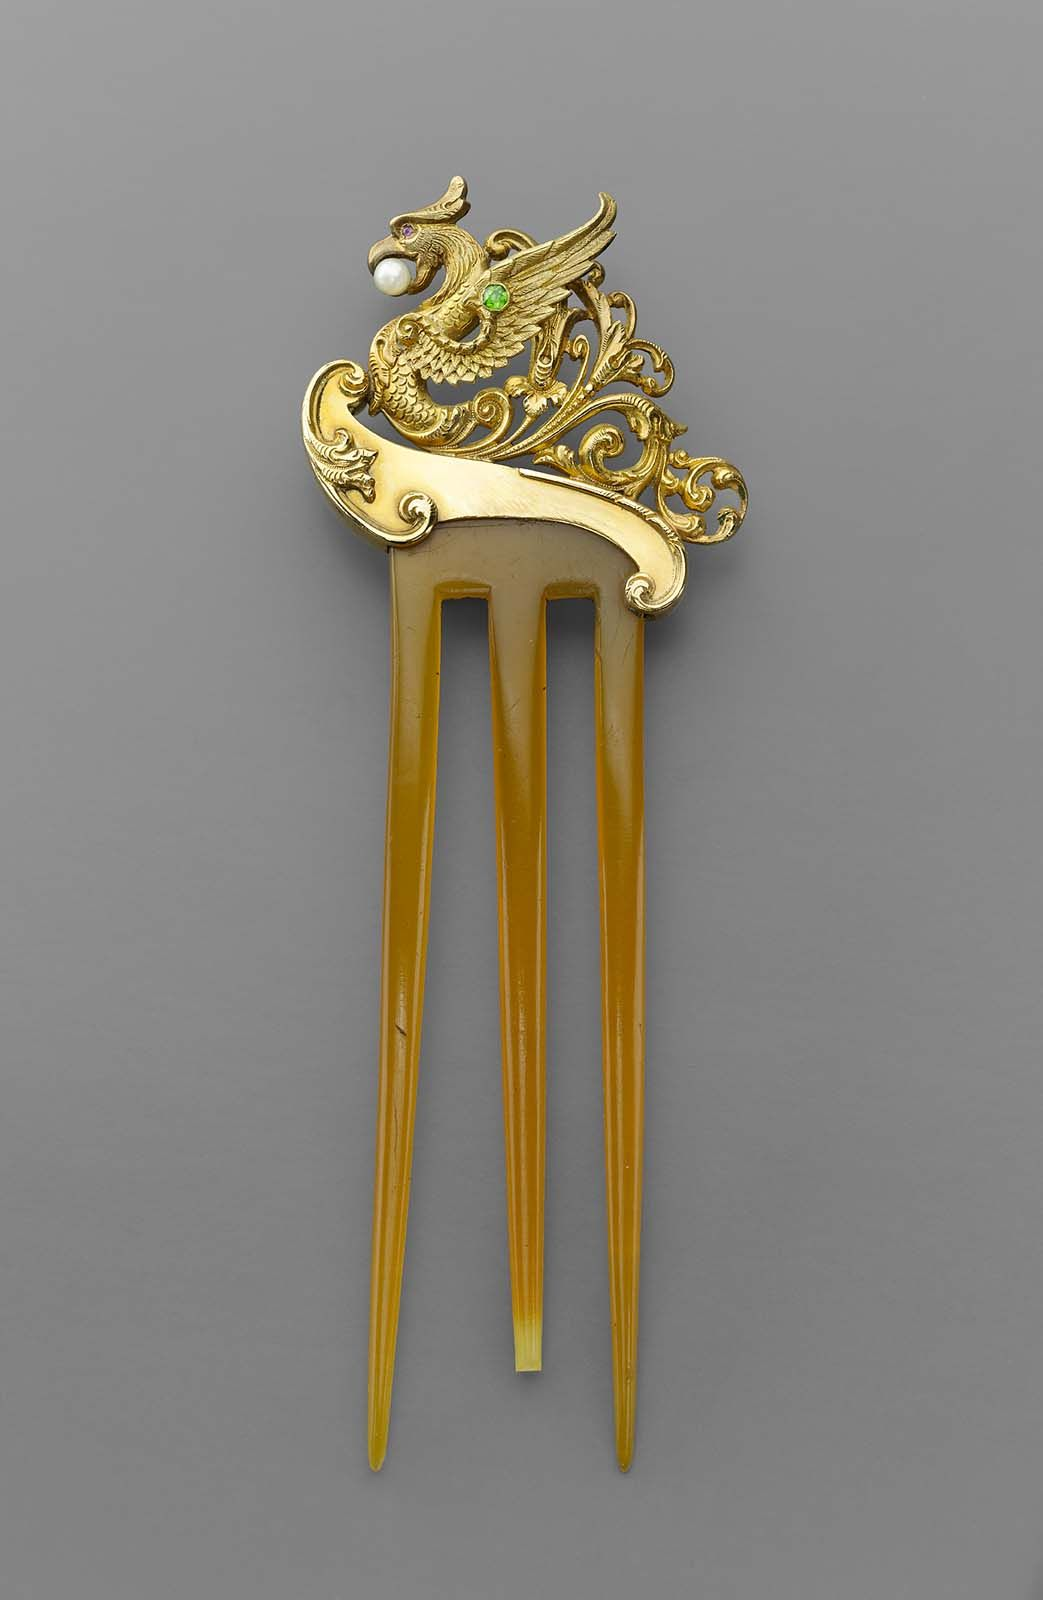 Hair comb featuring a profile dragon on a wave | Museum of Fine Arts, Boston